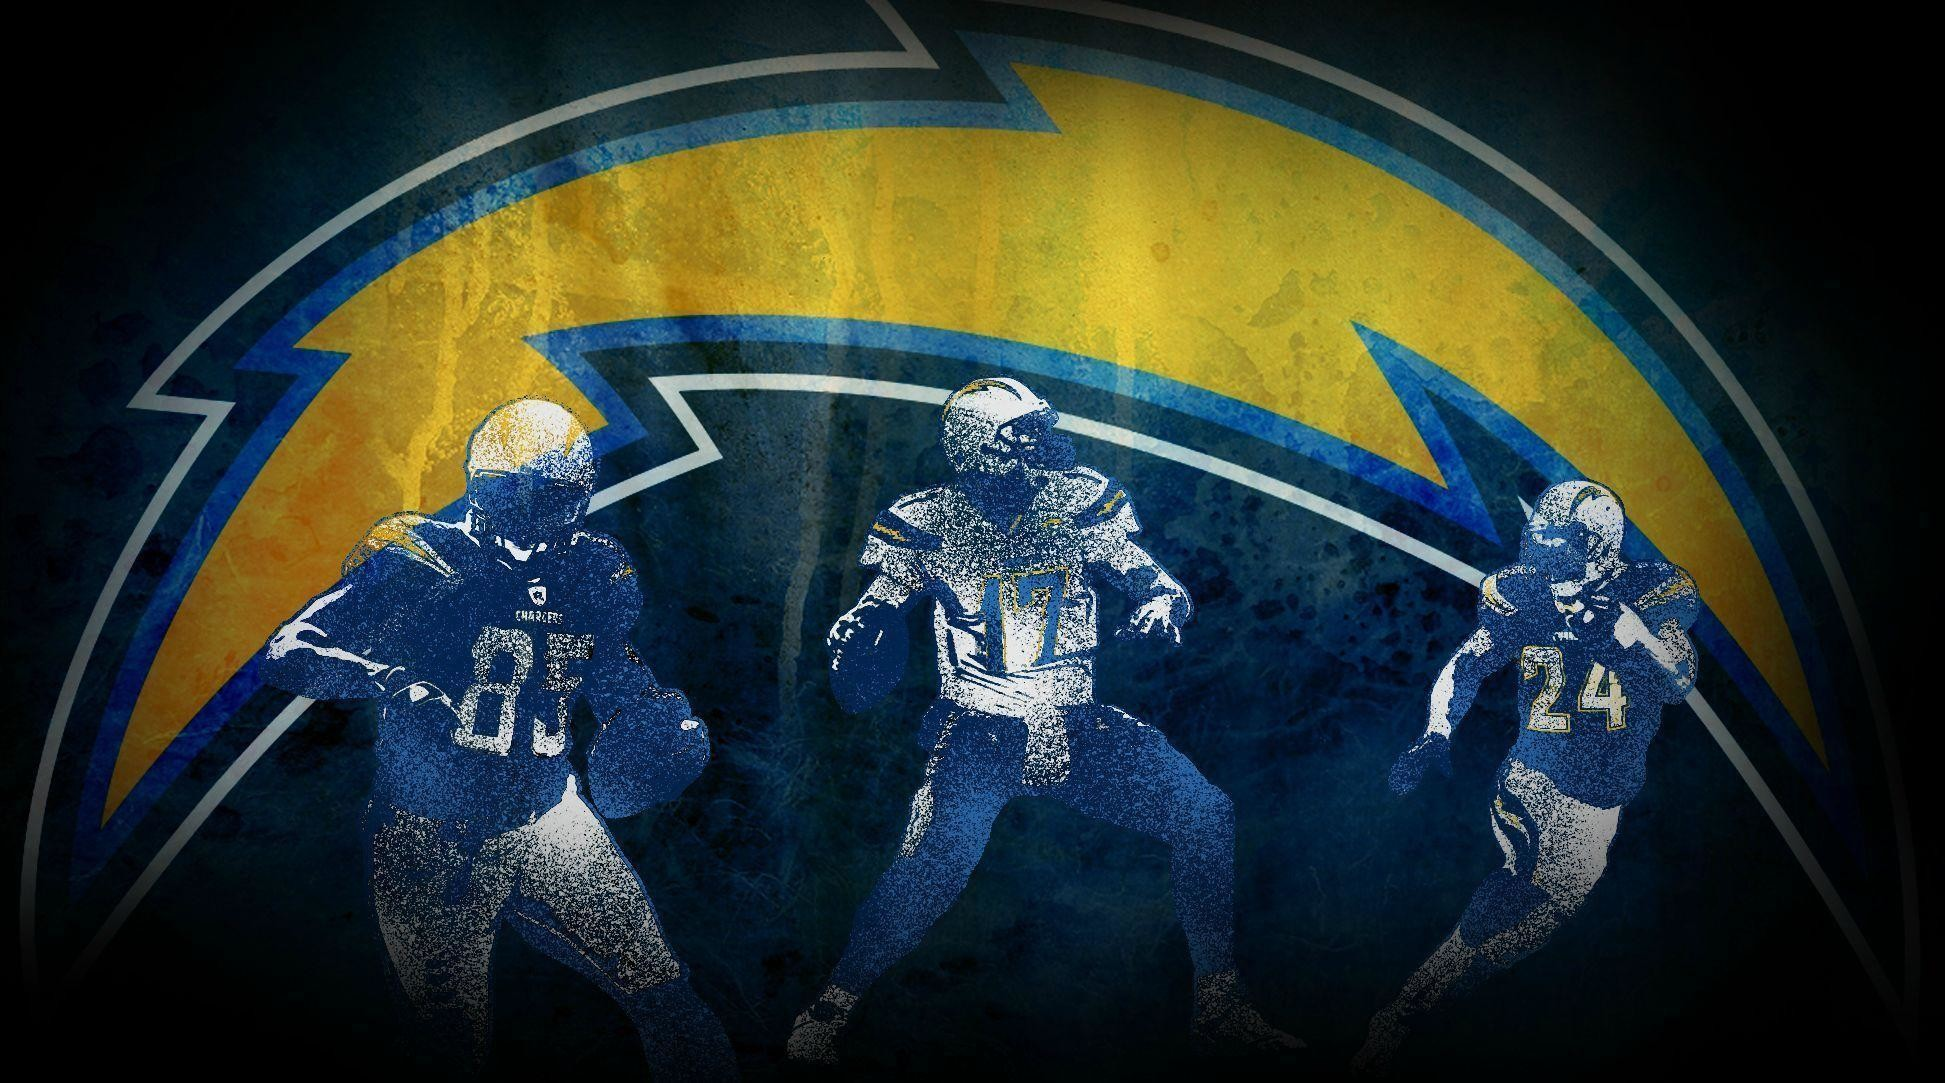 1945x1083 San Diego Chargers Wallpapers | HD Wallpapers Early